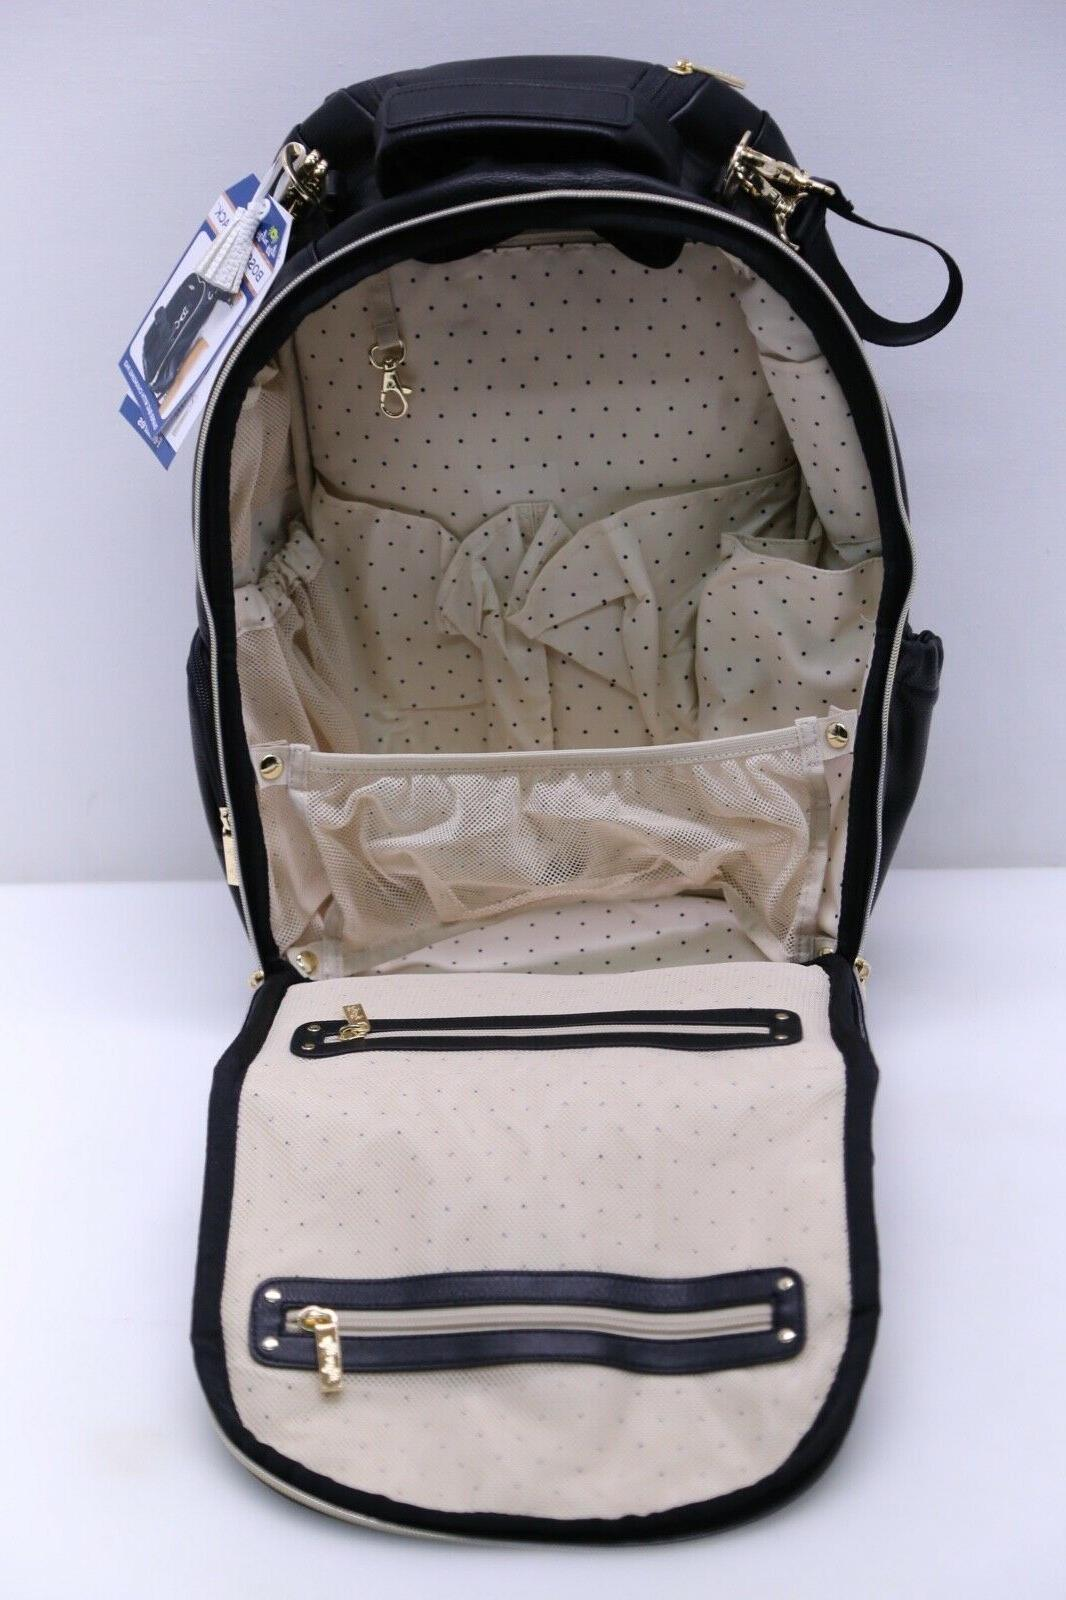 Itzy Ritzy Backpack Changing Pad w/ Clips